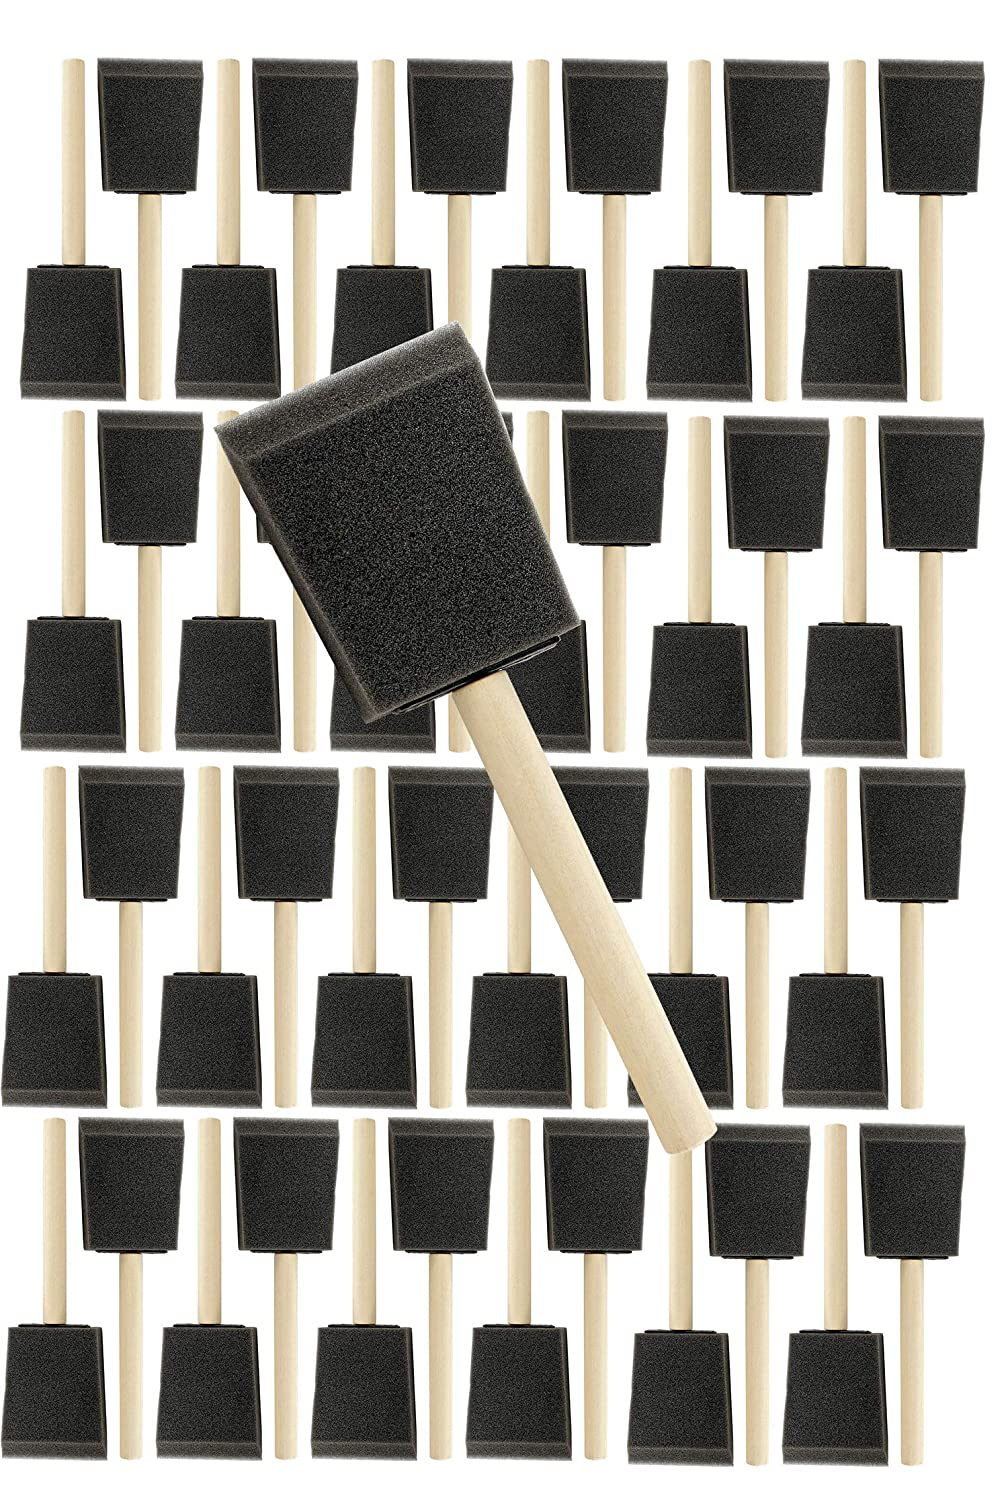 Pro Grade 2 Inch Foam Sponge Wood Handle Paint Brush Set (48 Value Pack) Lightweight, Durable and Used for Acrylics, Stains, Varnishes, Crafts, Art, Glue Brushes, Touch UP's, Polyurethane Touch UP' s Pro-Grade Supplies